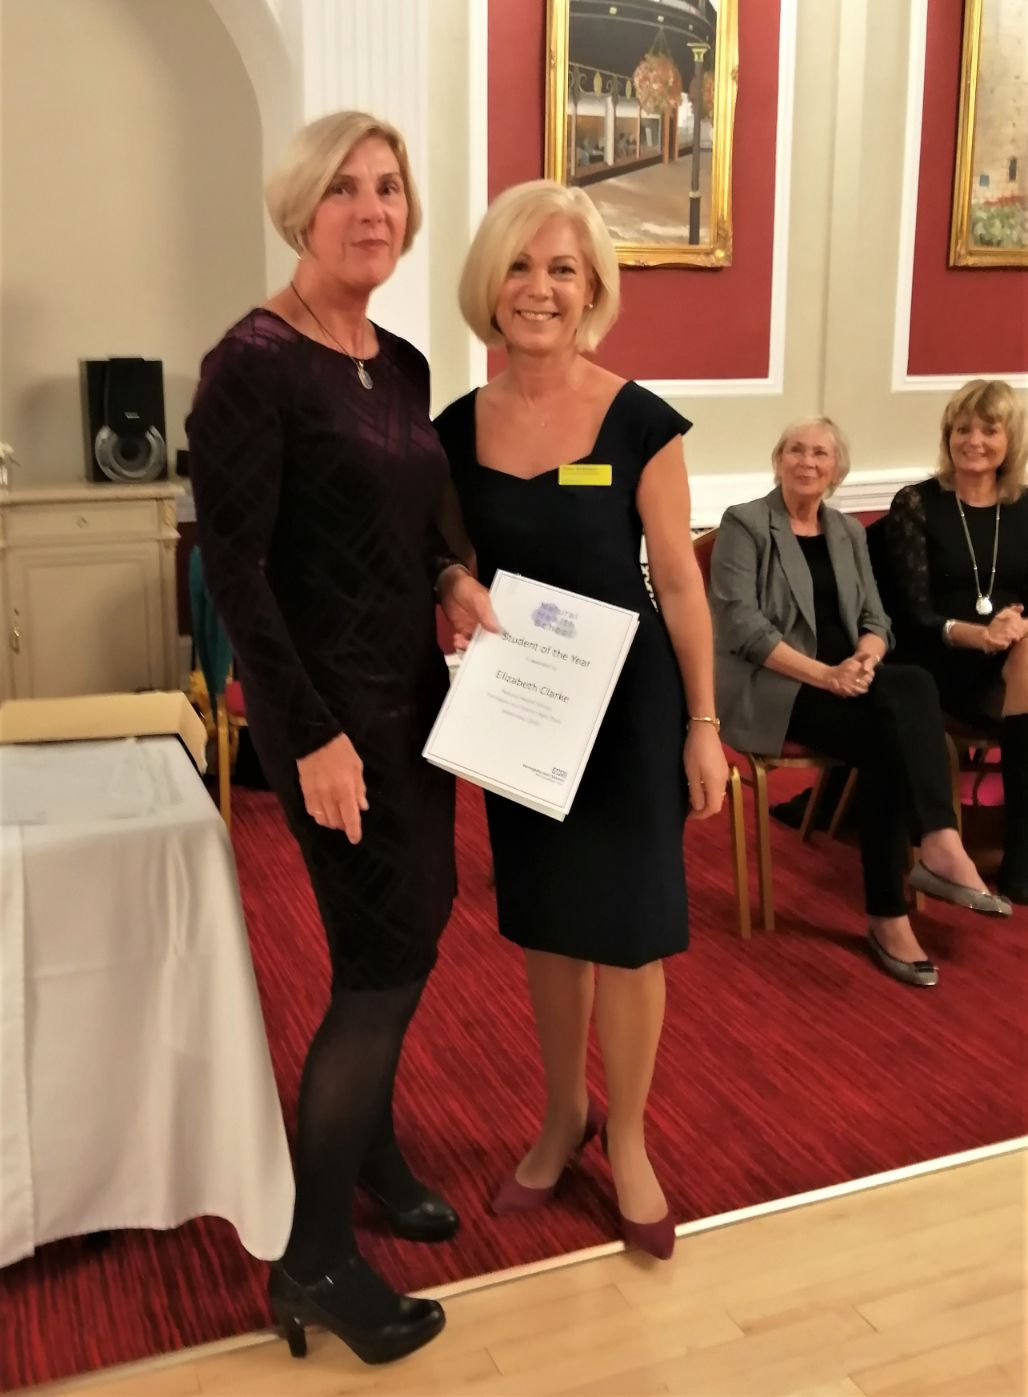 The Granby Care Home, Harrogate-Elizabeth Clarke receives her Student of the Year award from Fiona Adamson, brighterkind Business Development Manager